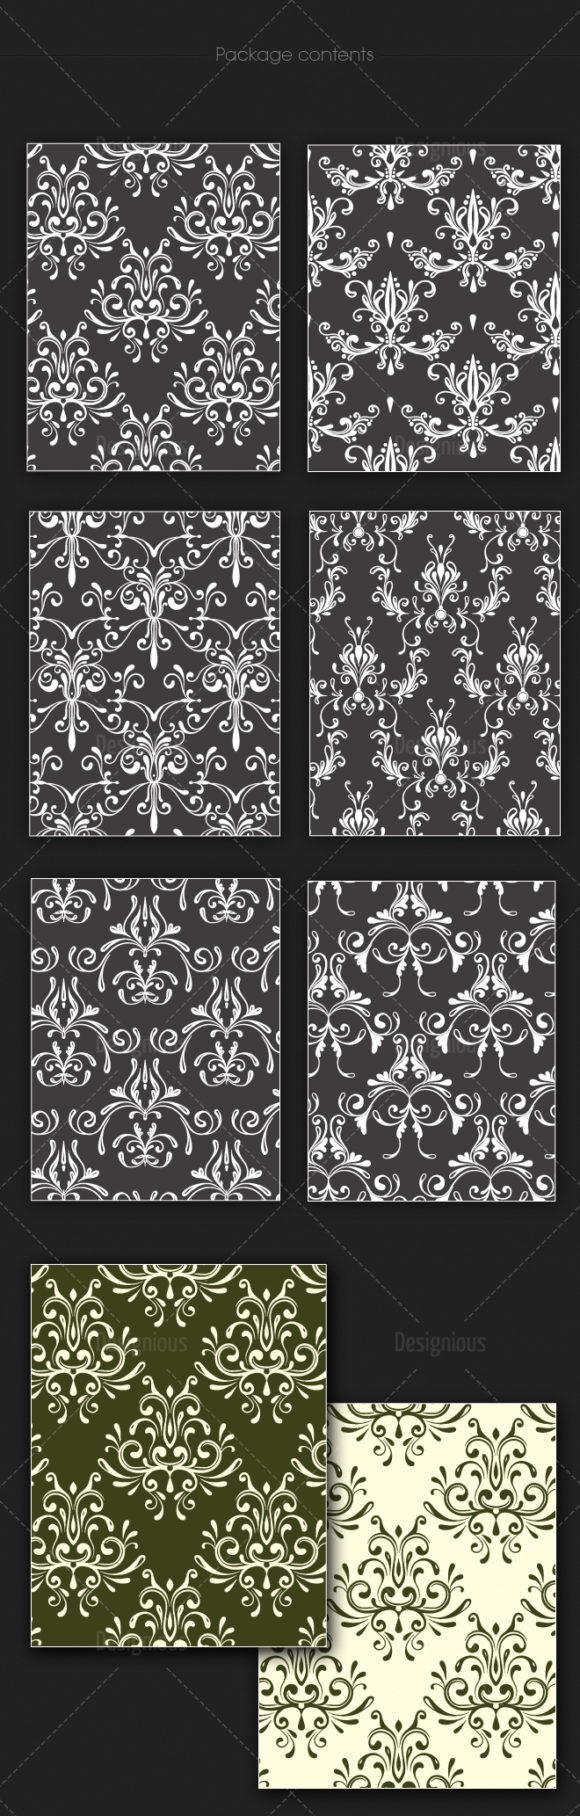 Seamless Patterns Vector Pack 128 6